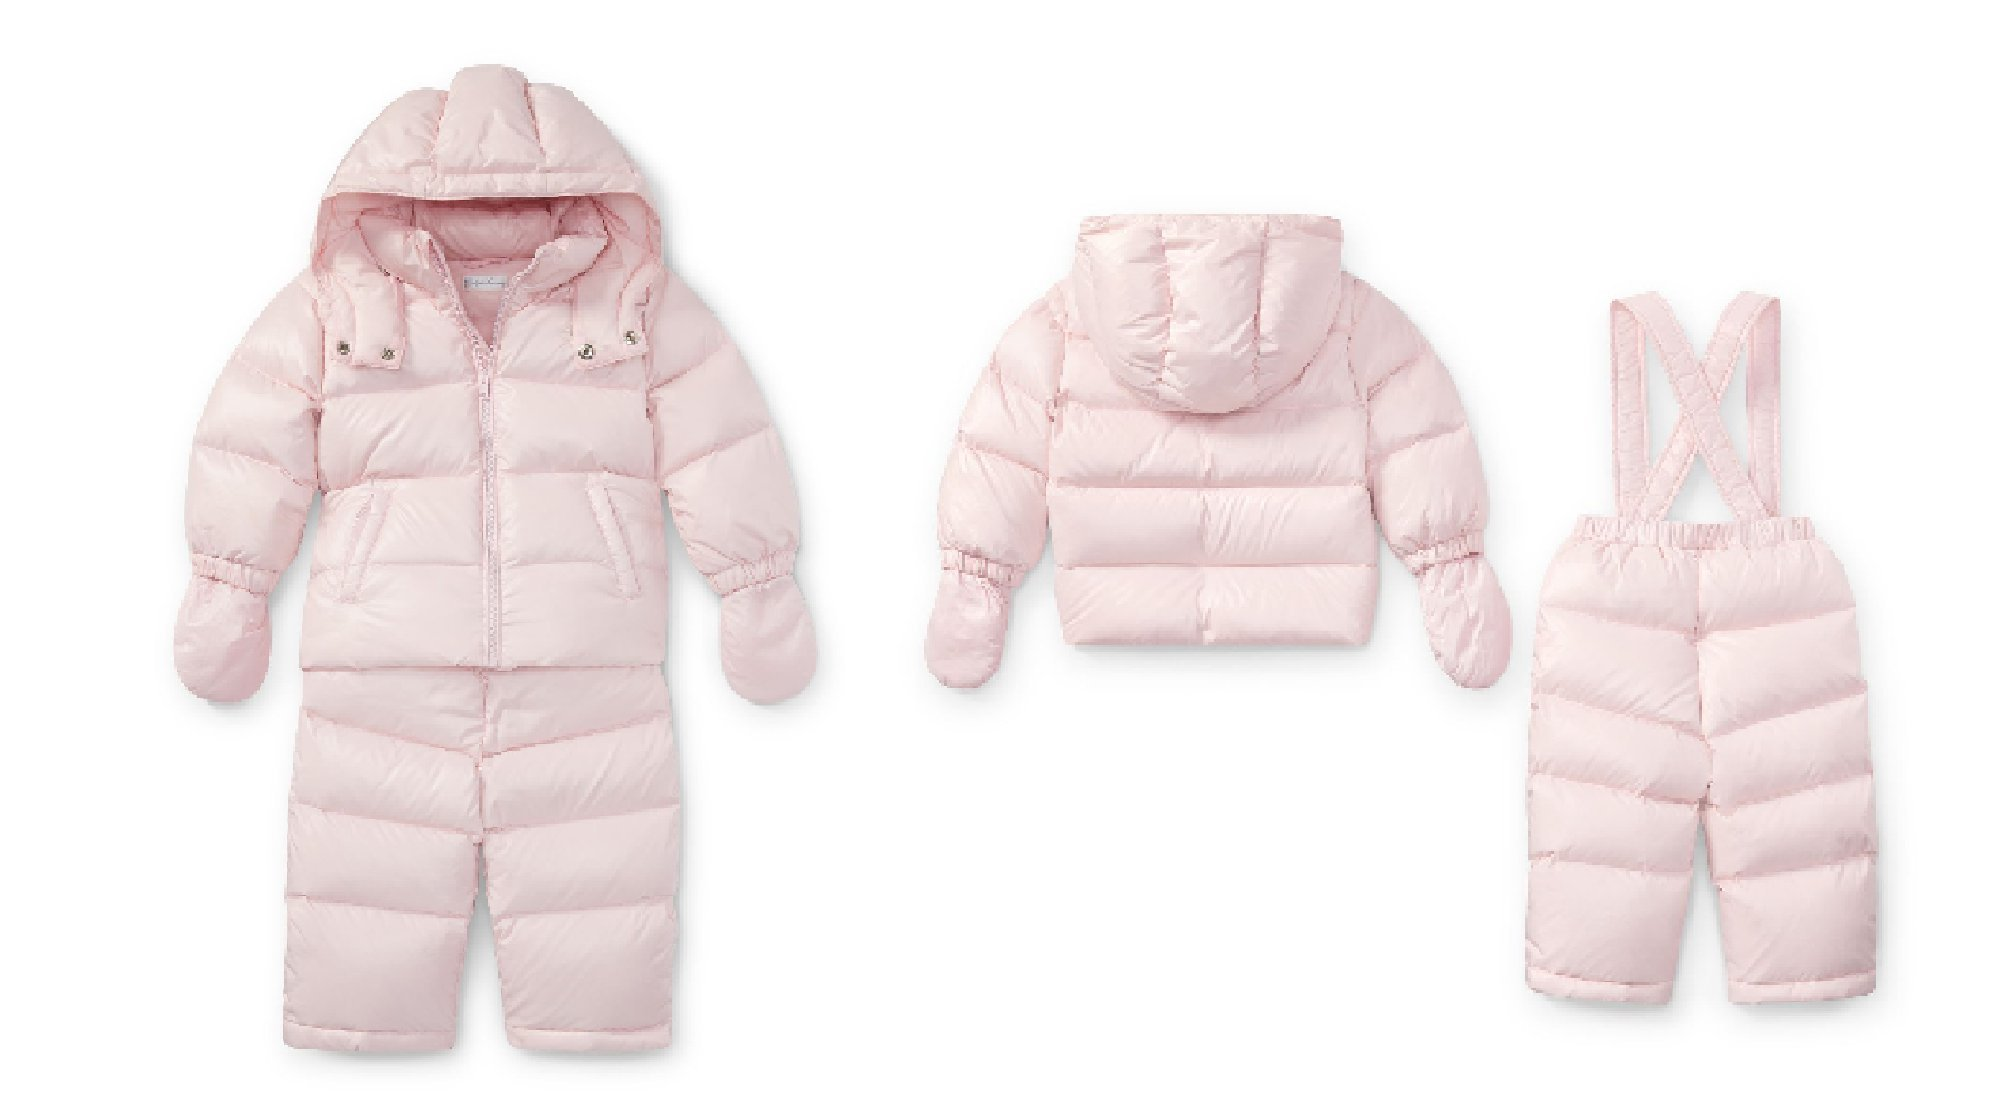 RALPH LAUREN Baby Girl Hooded Down 2pcs Snowsuit (Jacket and Pants) (18 Months) by RALPH LAUREN